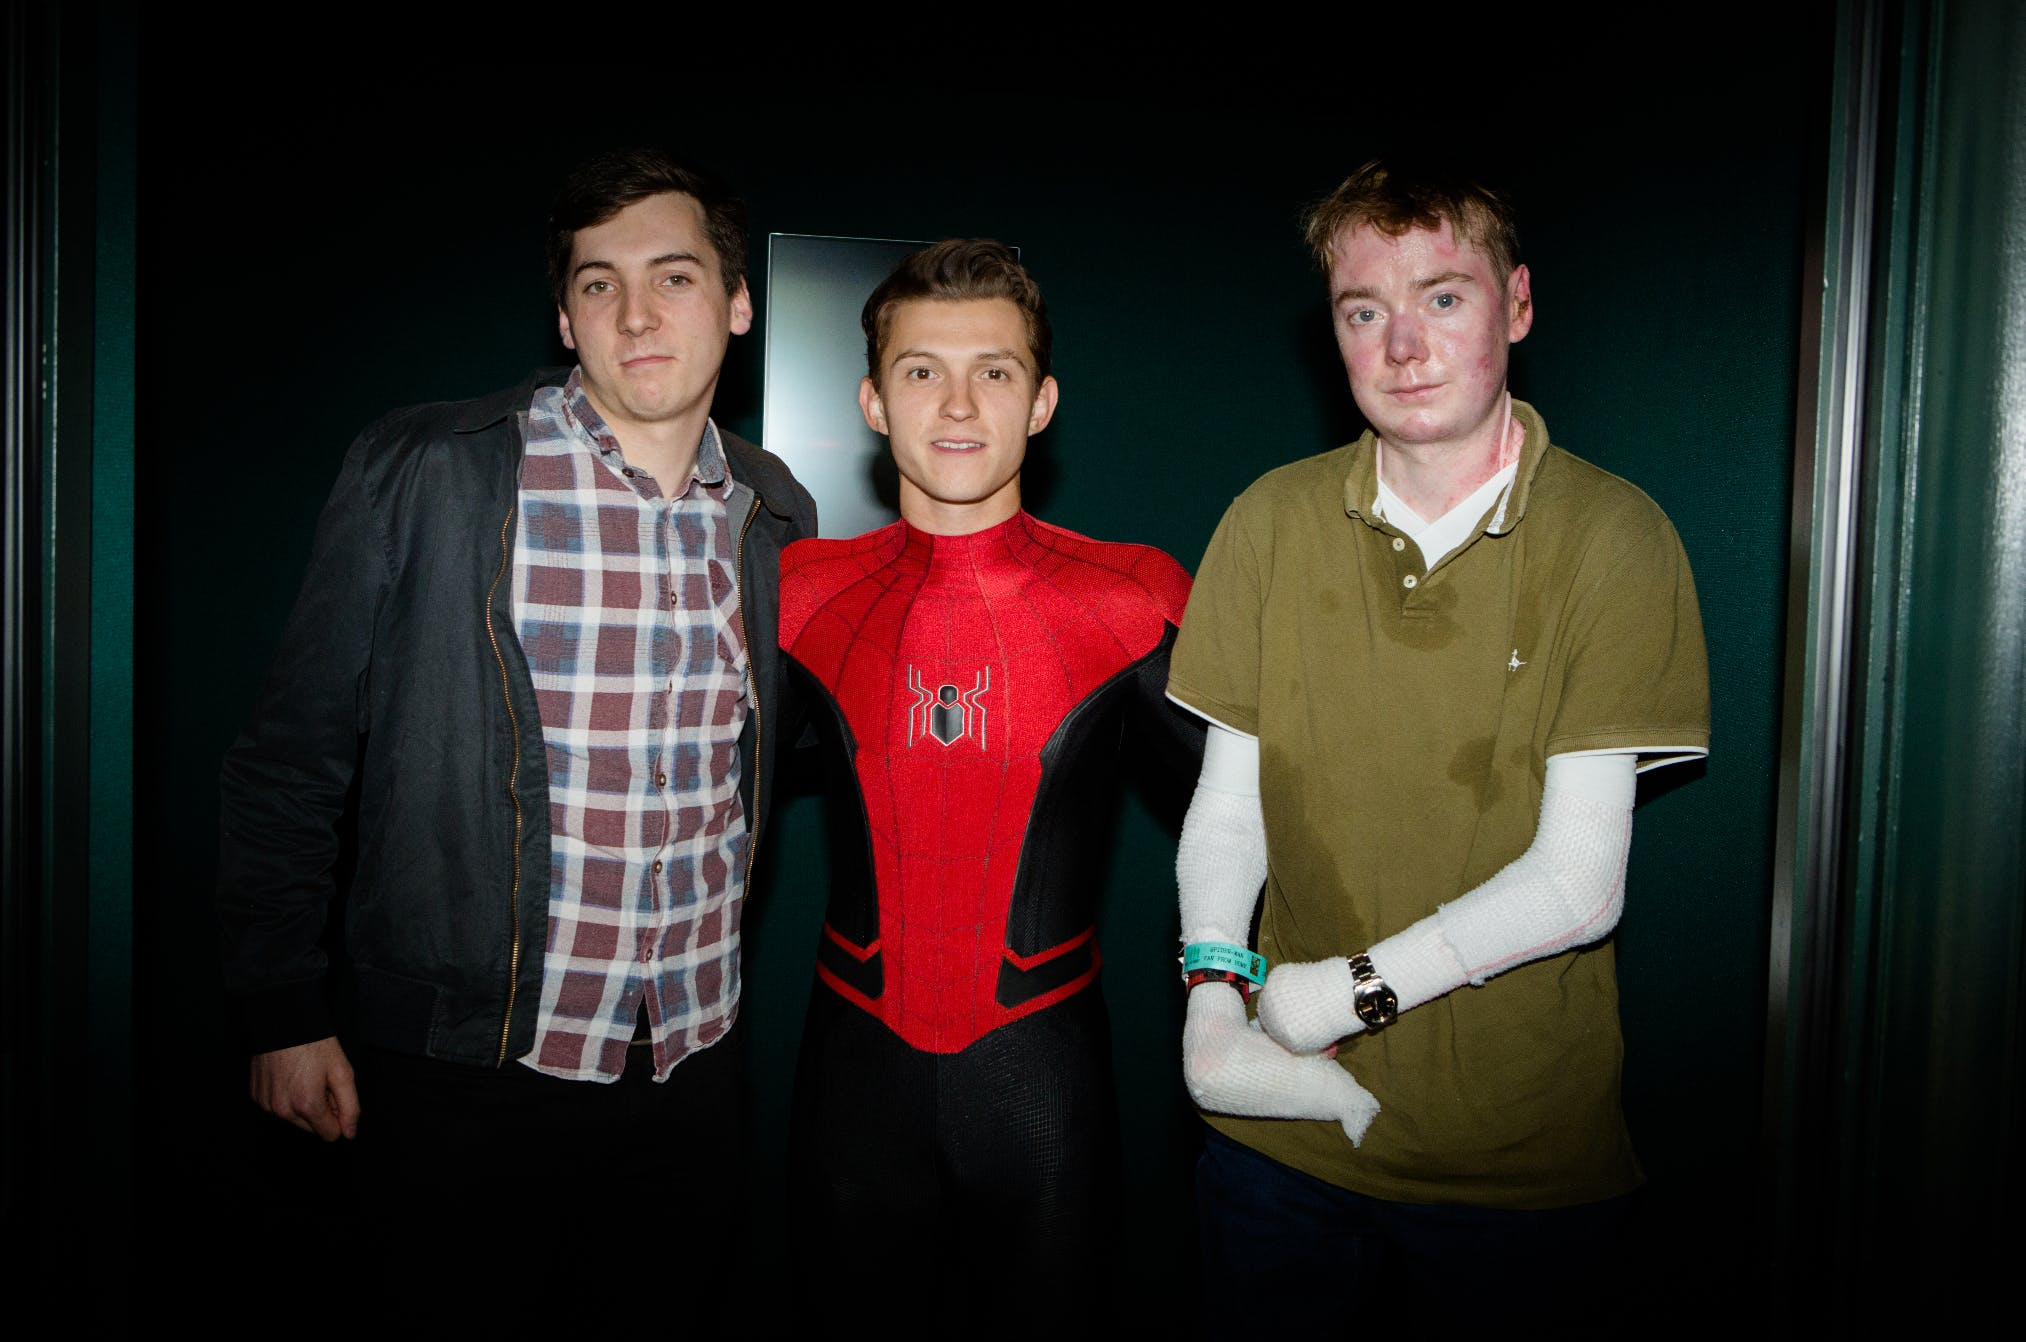 Actor Tom Holland dressed as Spiderman standing between two men - one in a check shirt and one in an olive shirt.